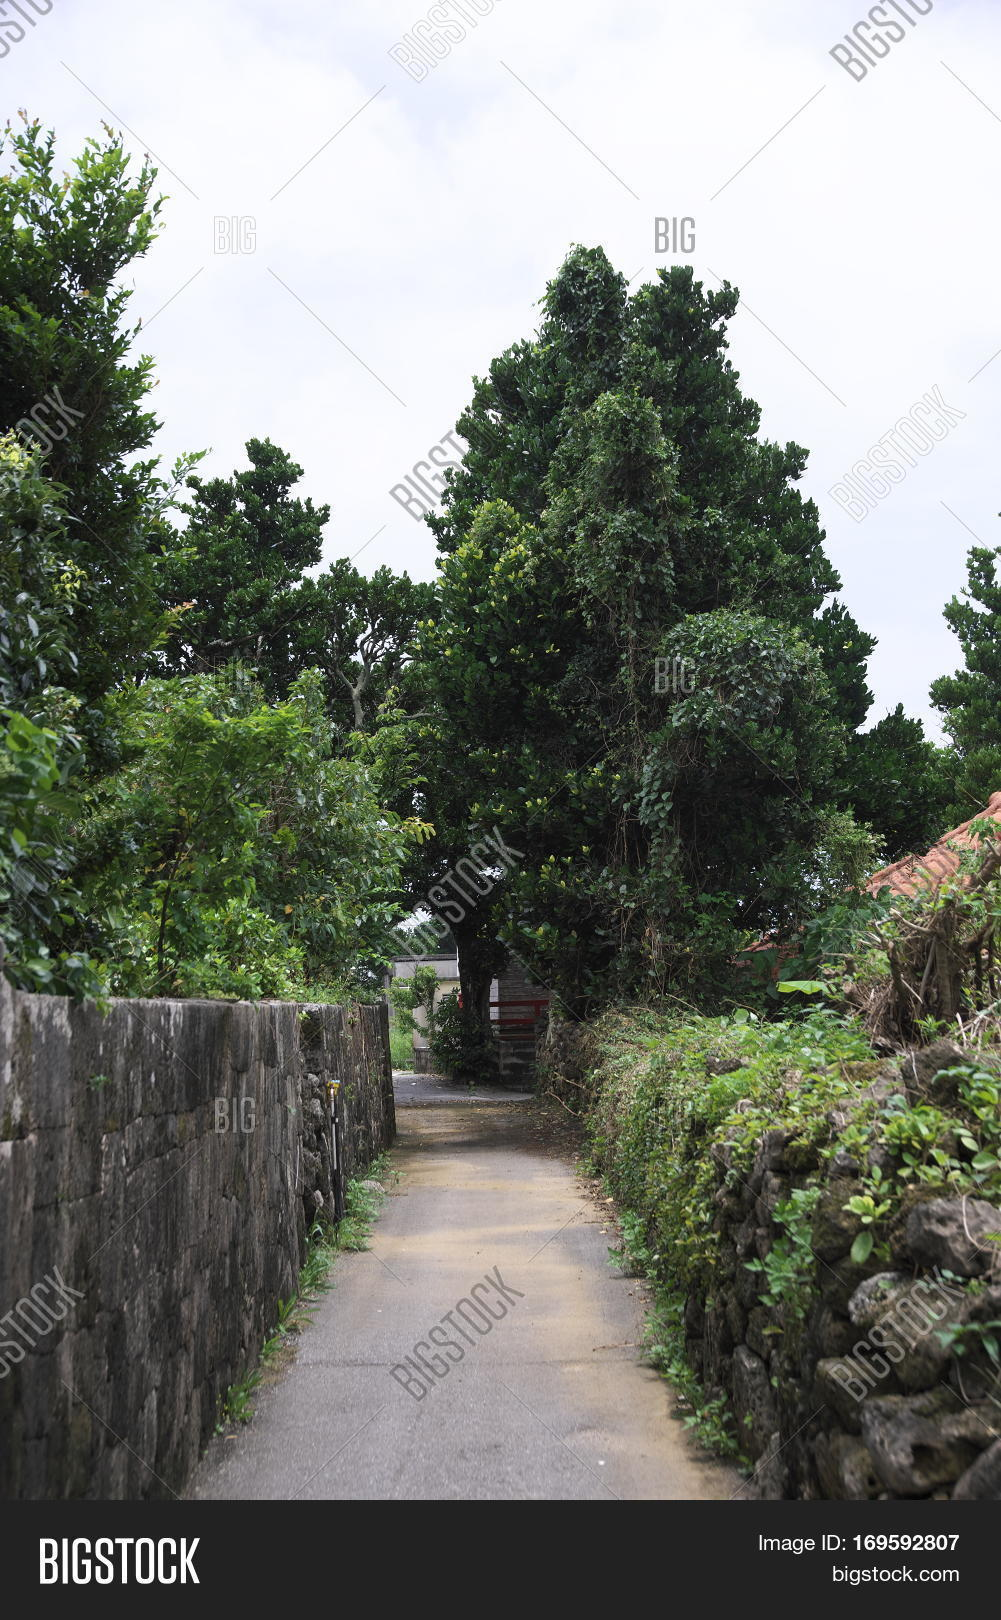 Asia,Fukugi,Fukui,Japan,Okinawa,Prefecture,Ryukyusu,Telephone,architecture,banyan,building,culture,electric,garden,gray,green,history,house,island,leaf,moss,pillar,plant,private,red,road,roof,sightseeing,south,stone,street,telegraph,tile,travel,tree,tropical,village,wall,wire